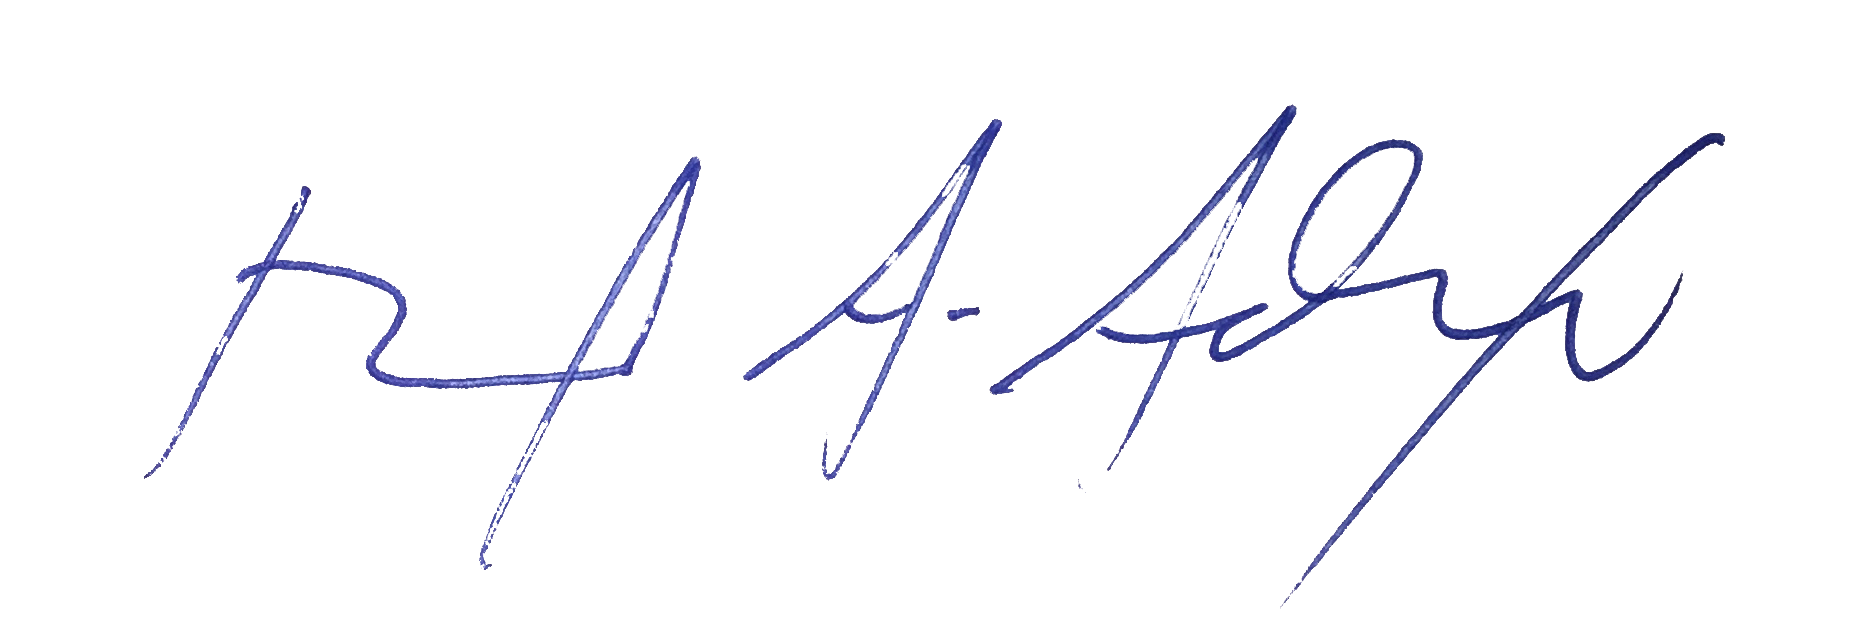 Superintendent of Ascension Public School David Alexander Signature